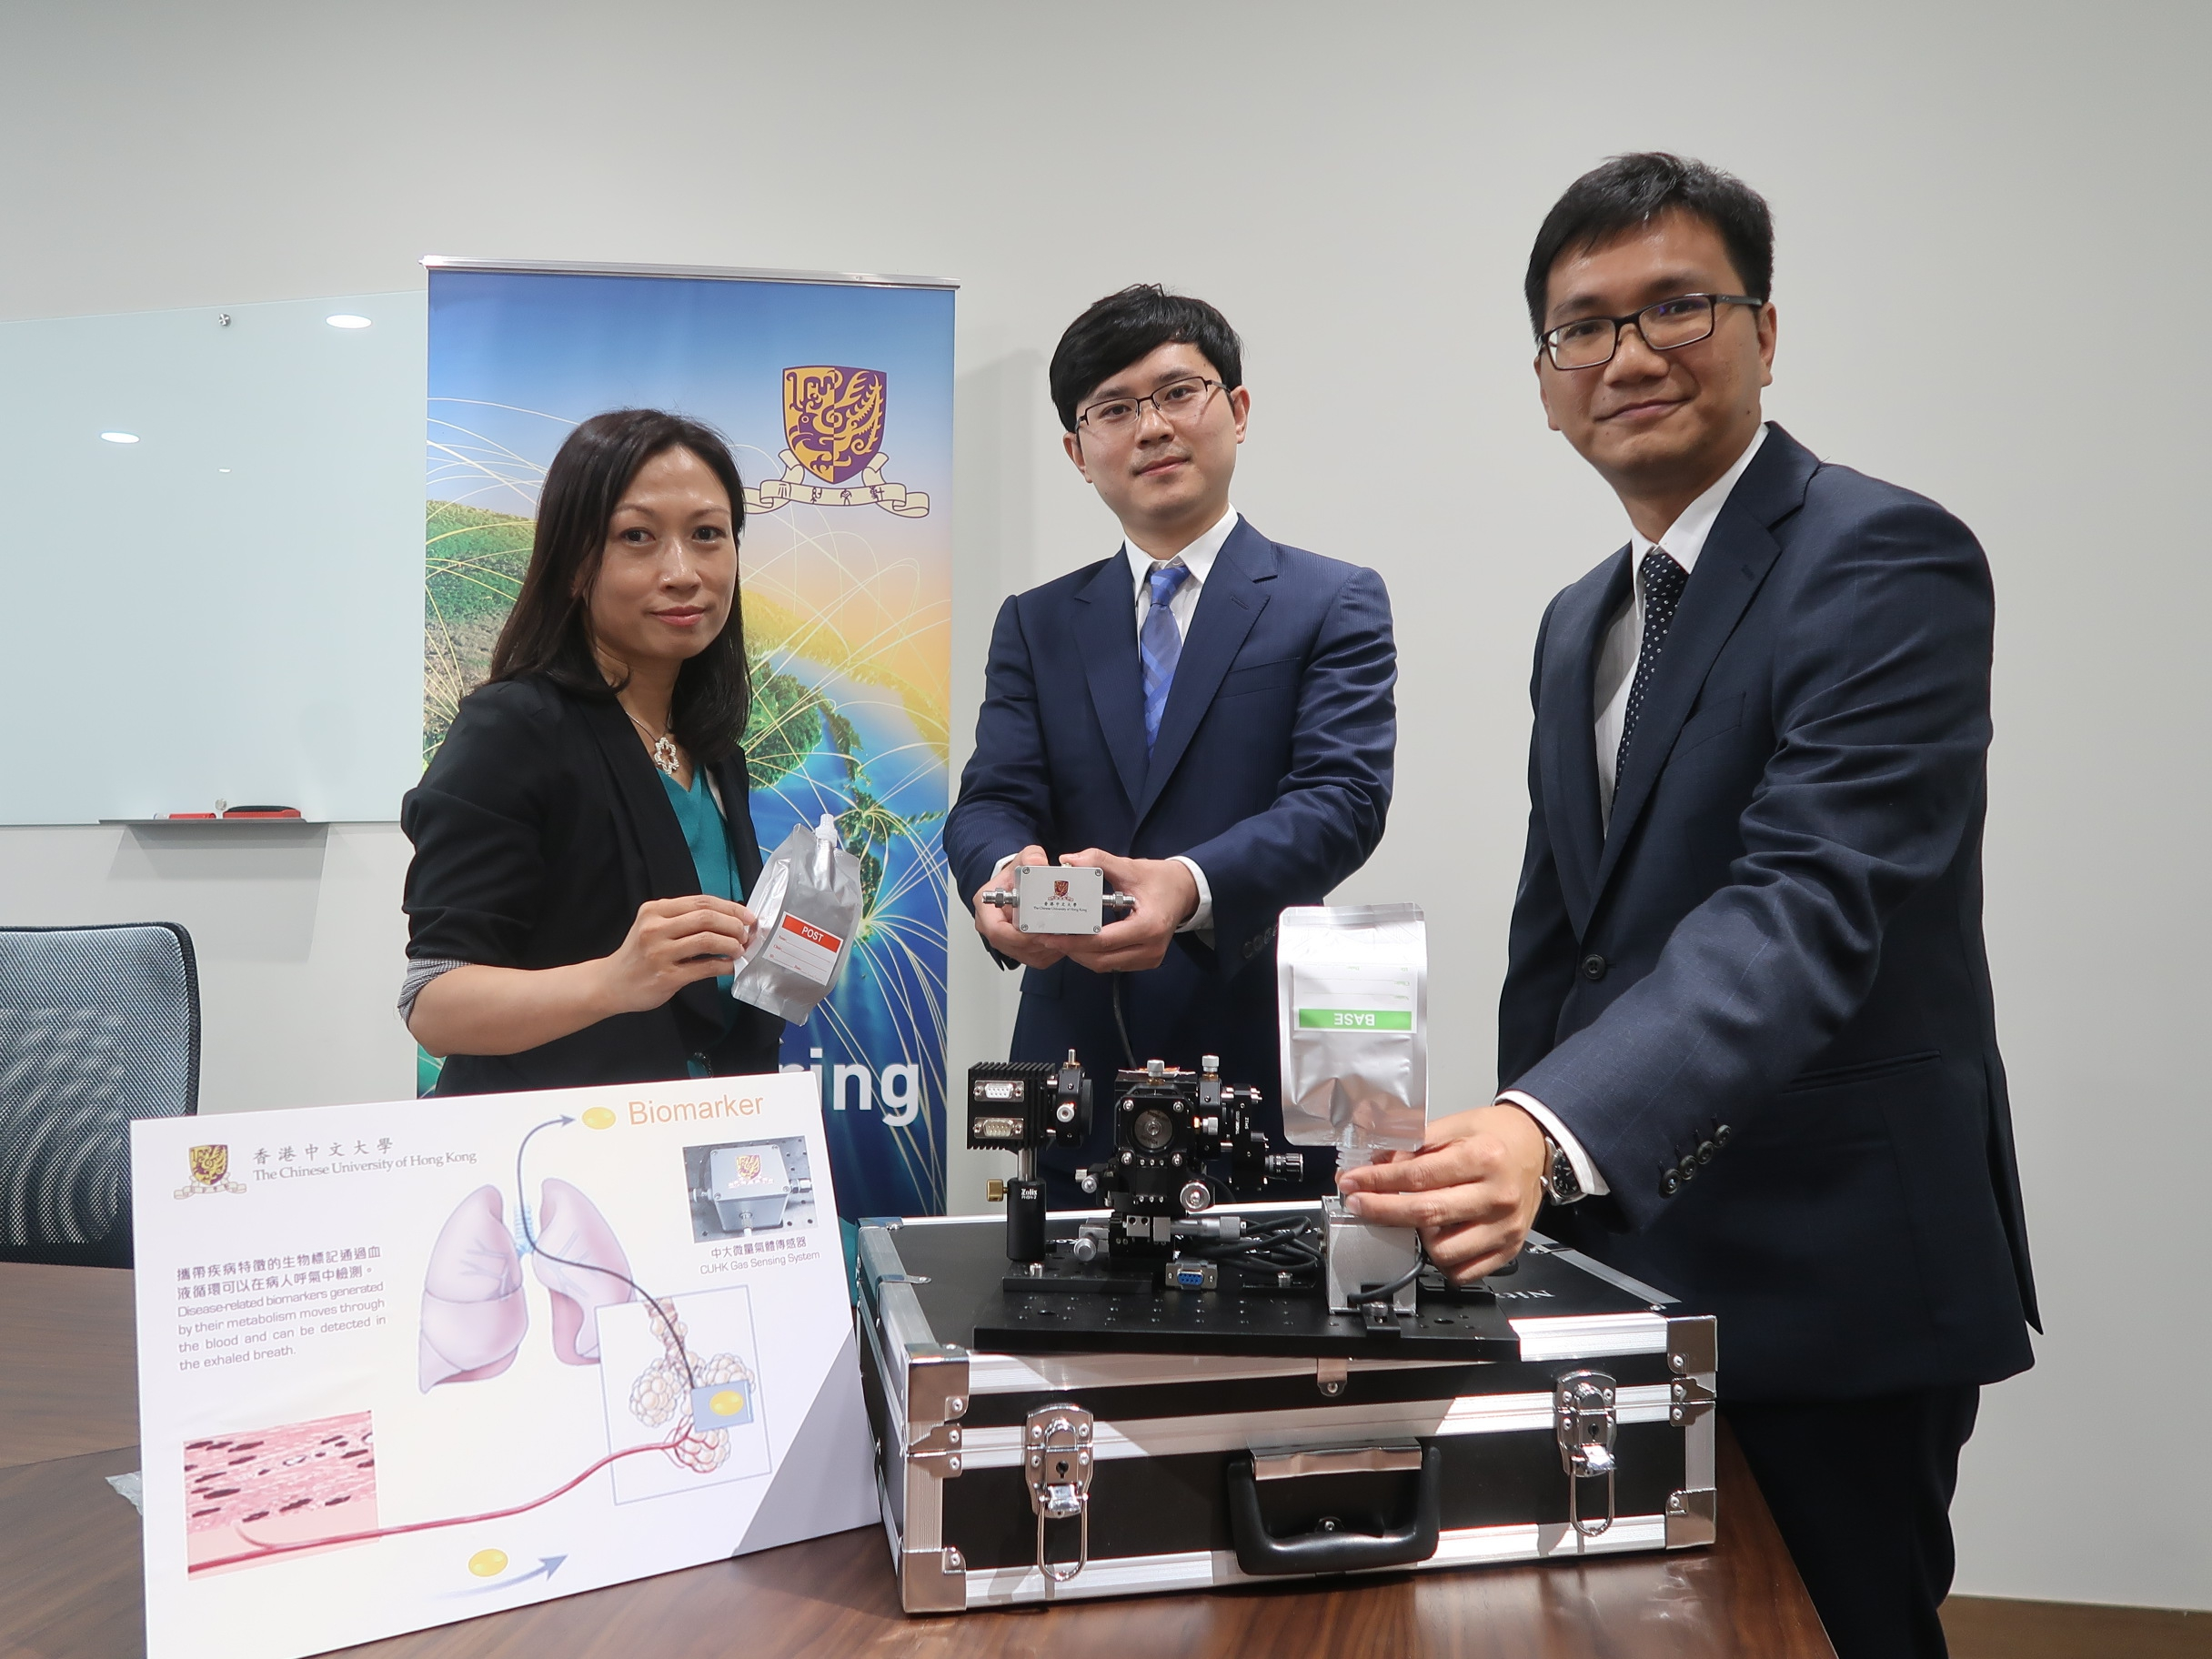 (From left) Ms CHING Yuet Ling, Chief Nursing Officer, Department of Medicine and Therapeutics; Prof. REN Wei, Assistant Professor, Department of Mechanical and Automation Engineering; and Prof. HO Kin Fai, Assistant Professor, The Jockey Club School of Public Health and Primary Care, CUHK.